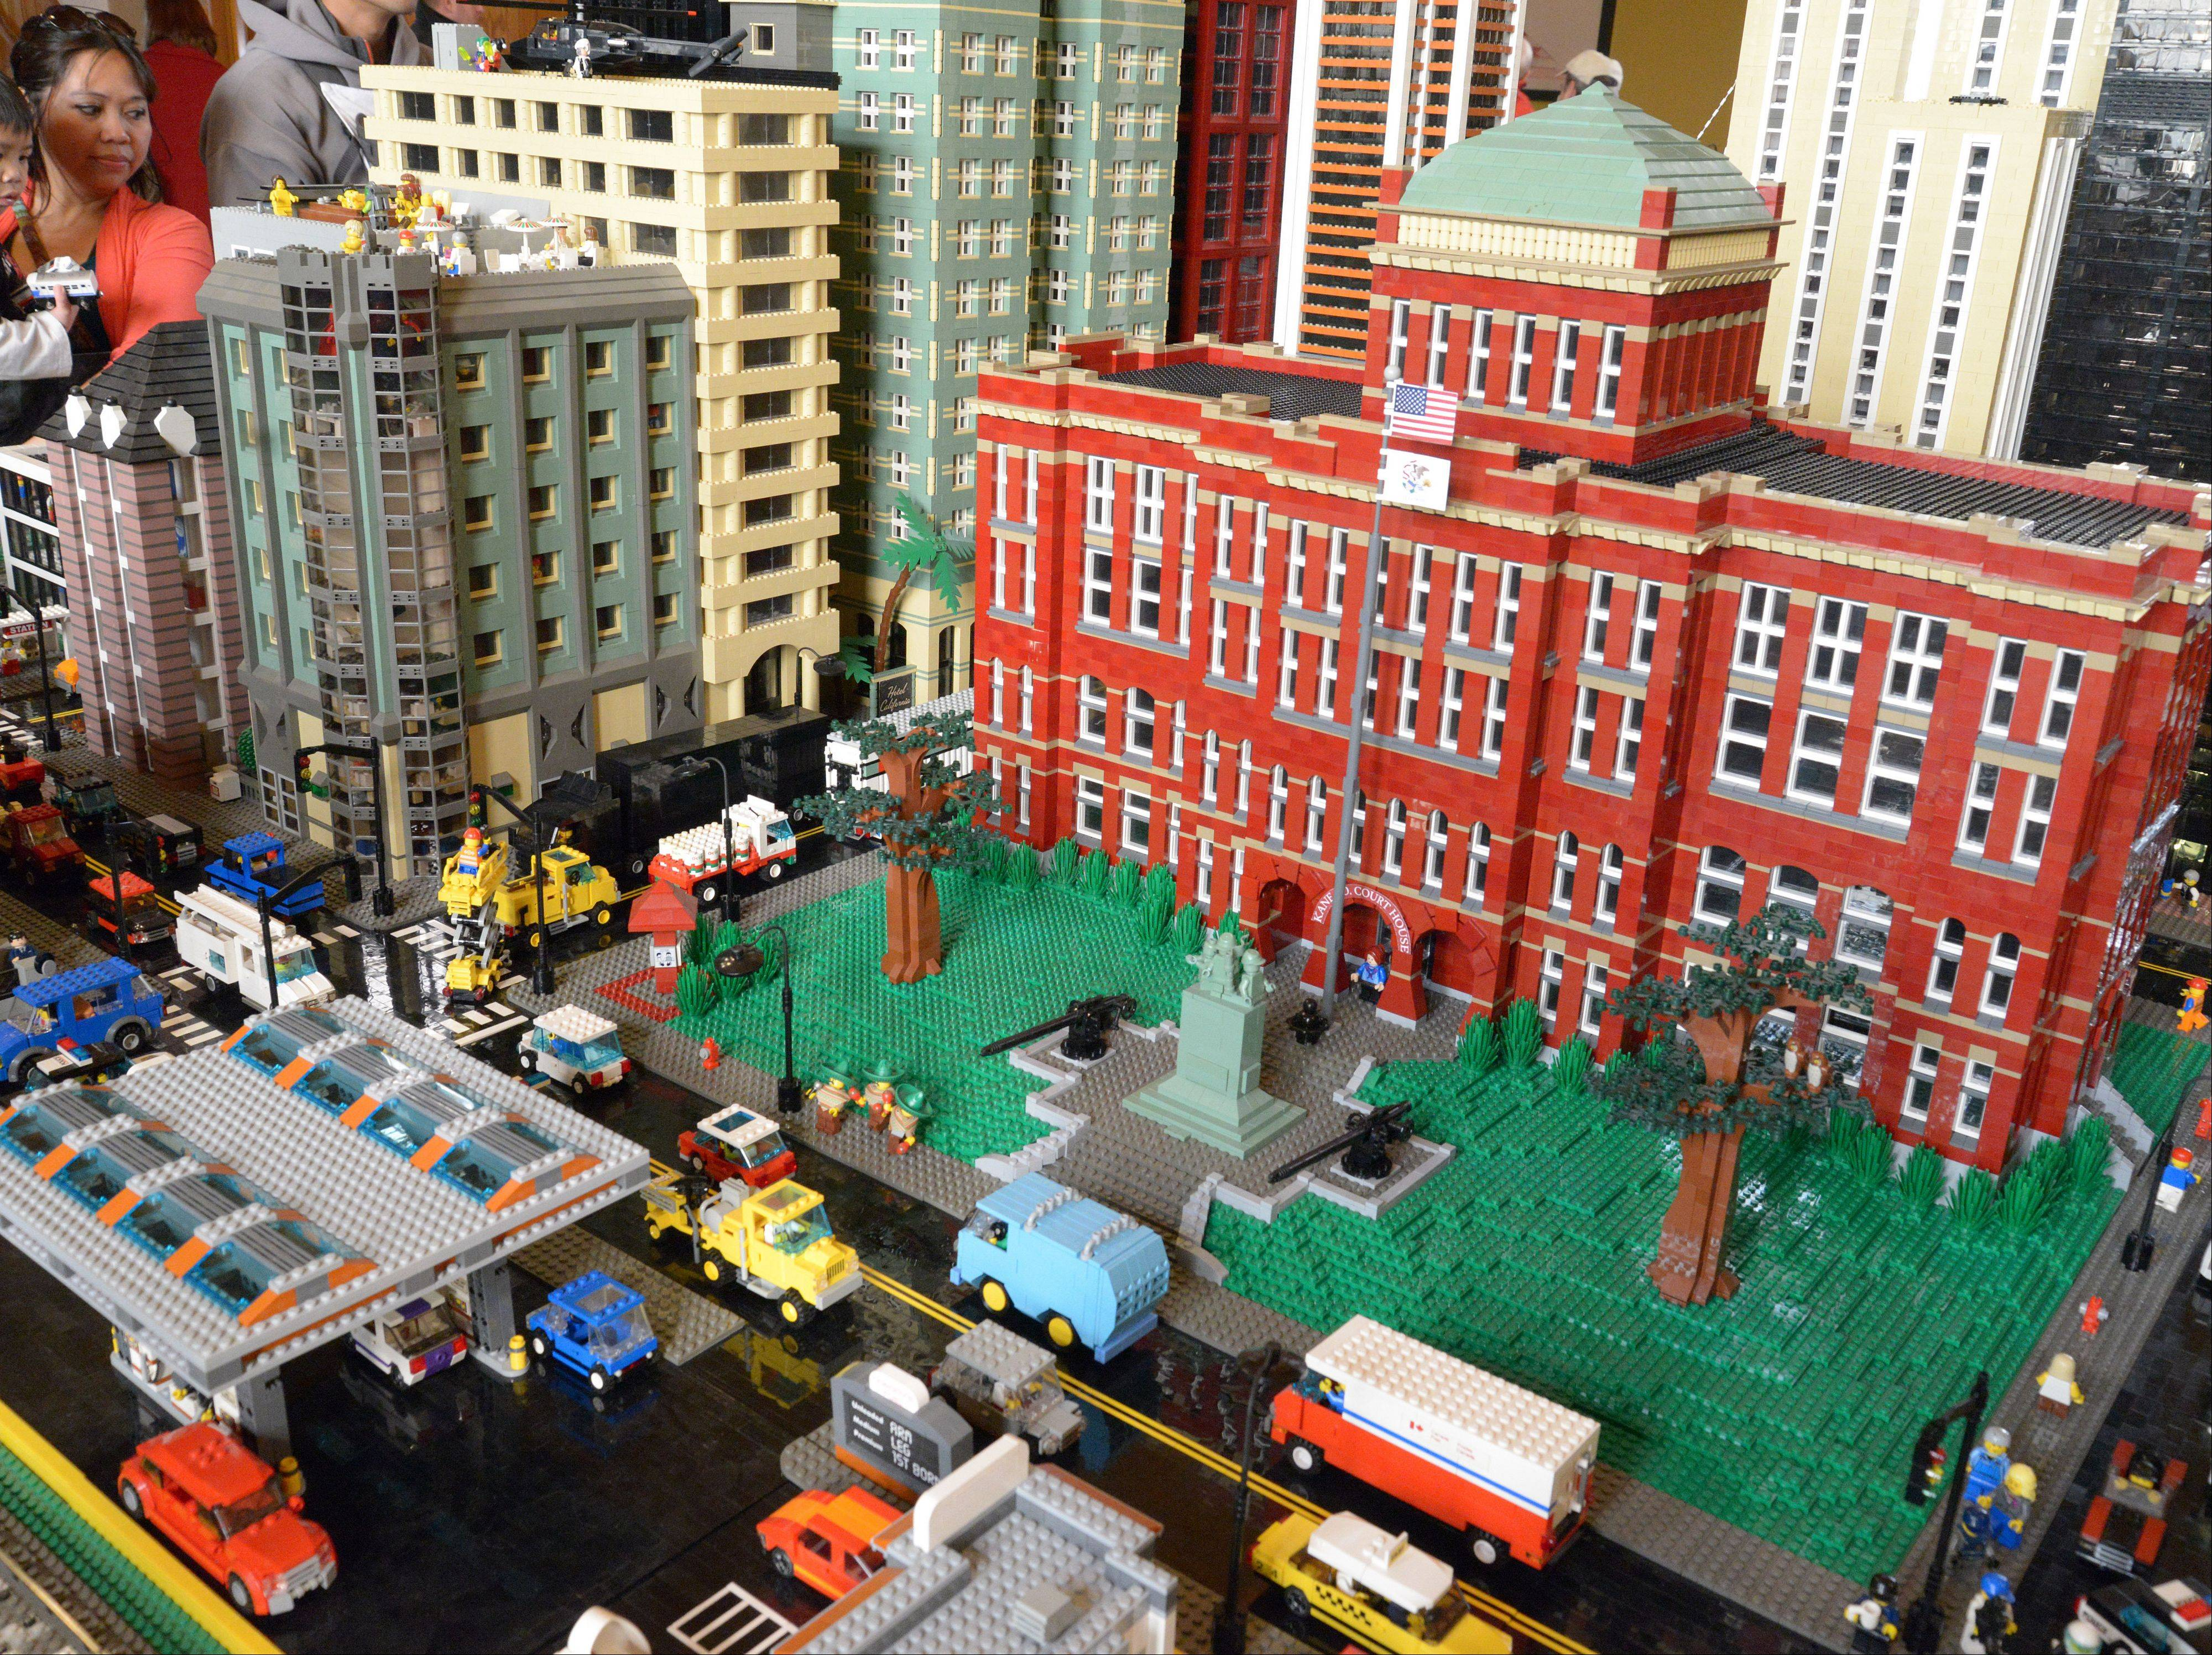 Lego is building its first factory in China as part of a plan to move production closer to Asia, its fastest growing market.